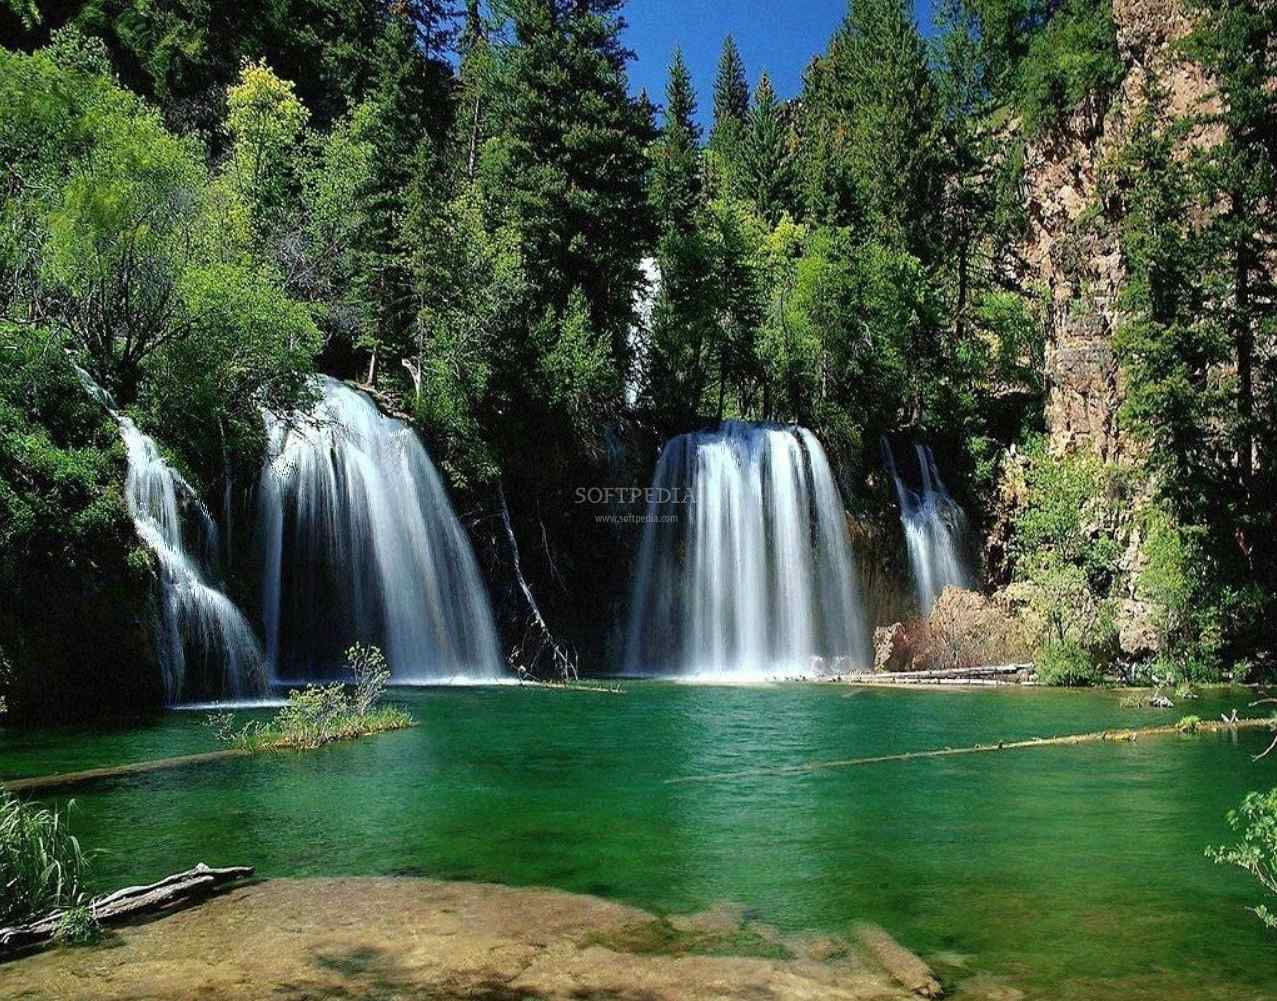 http://2.bp.blogspot.com/-3uW4g3hGHSM/UDWta6cXRXI/AAAAAAAAFME/0gl6mdyKbwc/s1600/Nature+Waterfall+Beauty+Screensaver.jpg